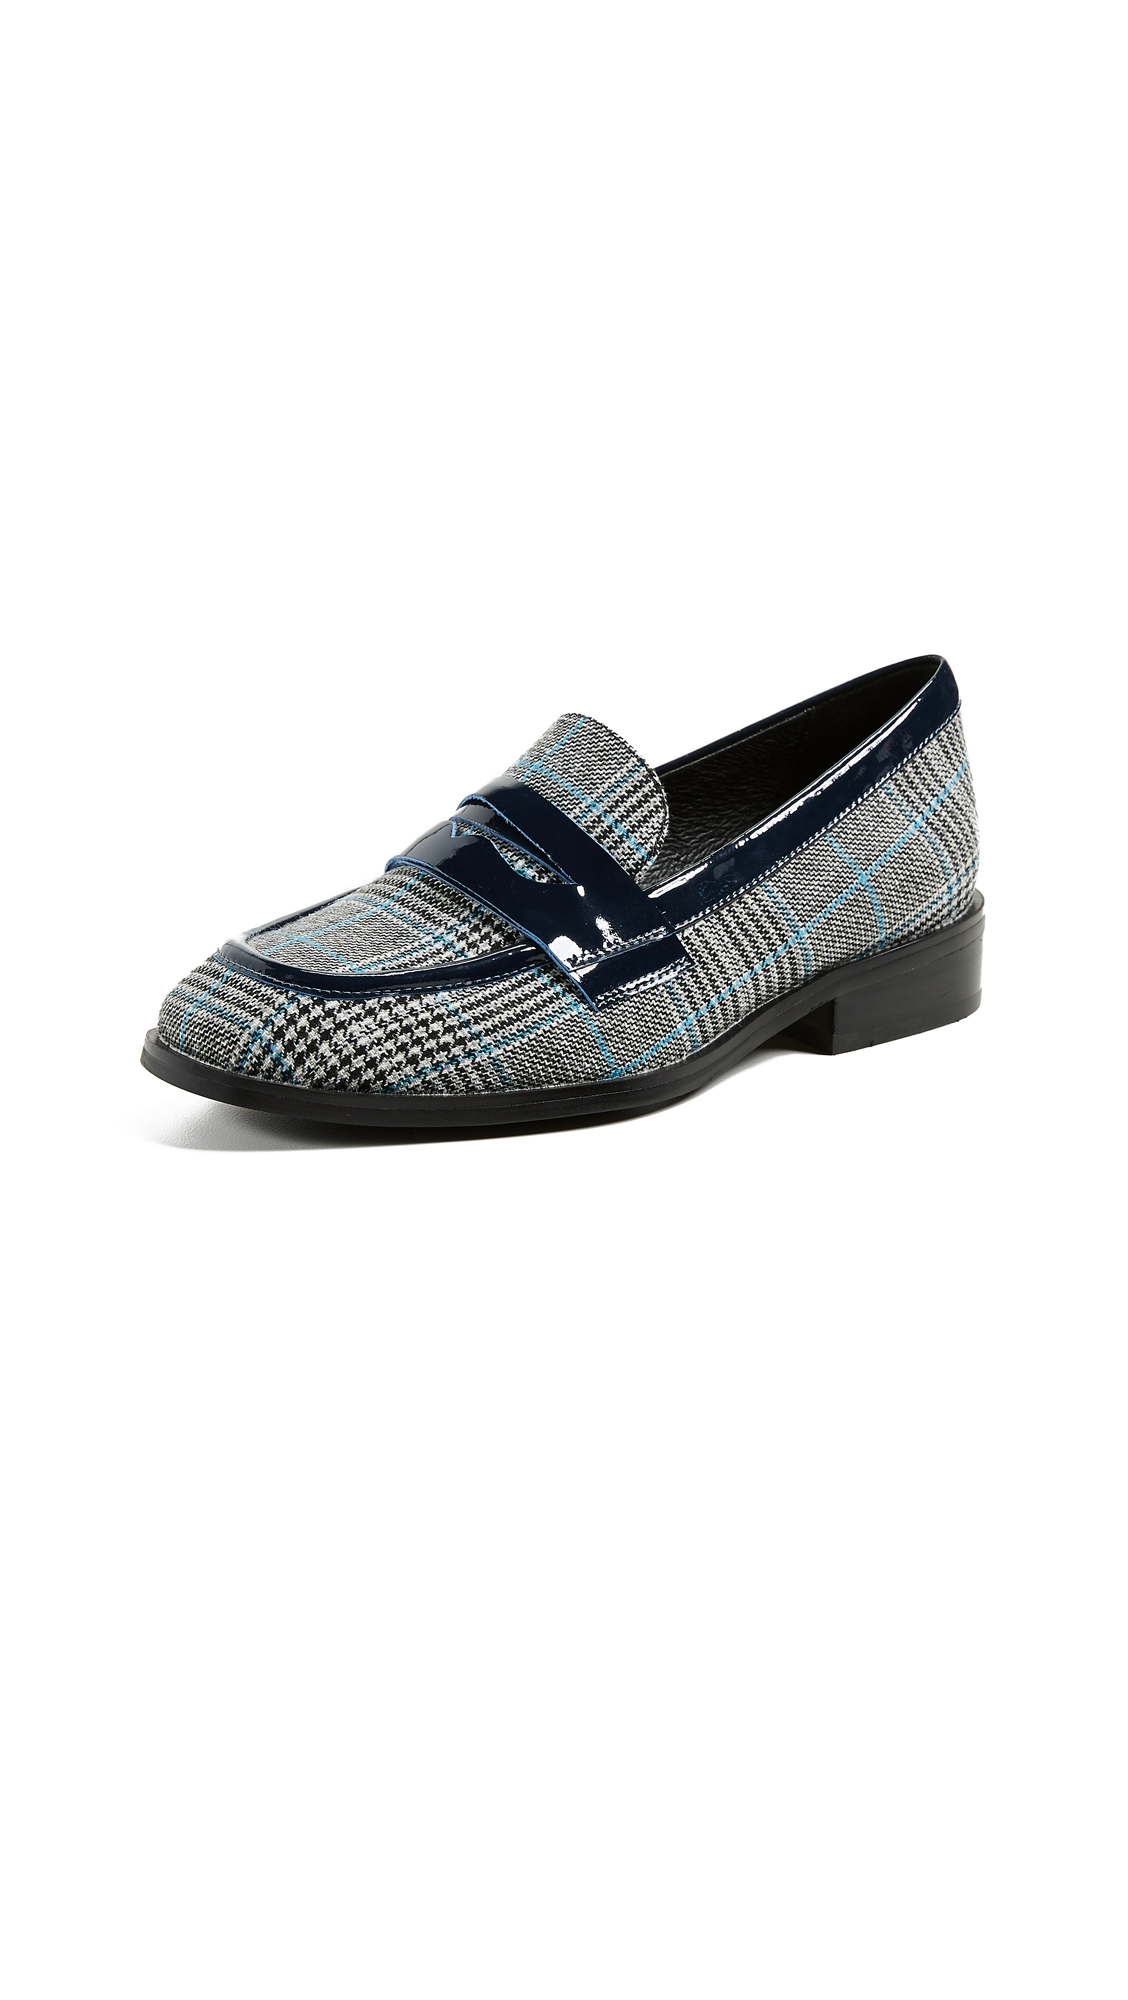 Jeffrey Campbell Hornsby Plaid Loafers - Black/White/Blue